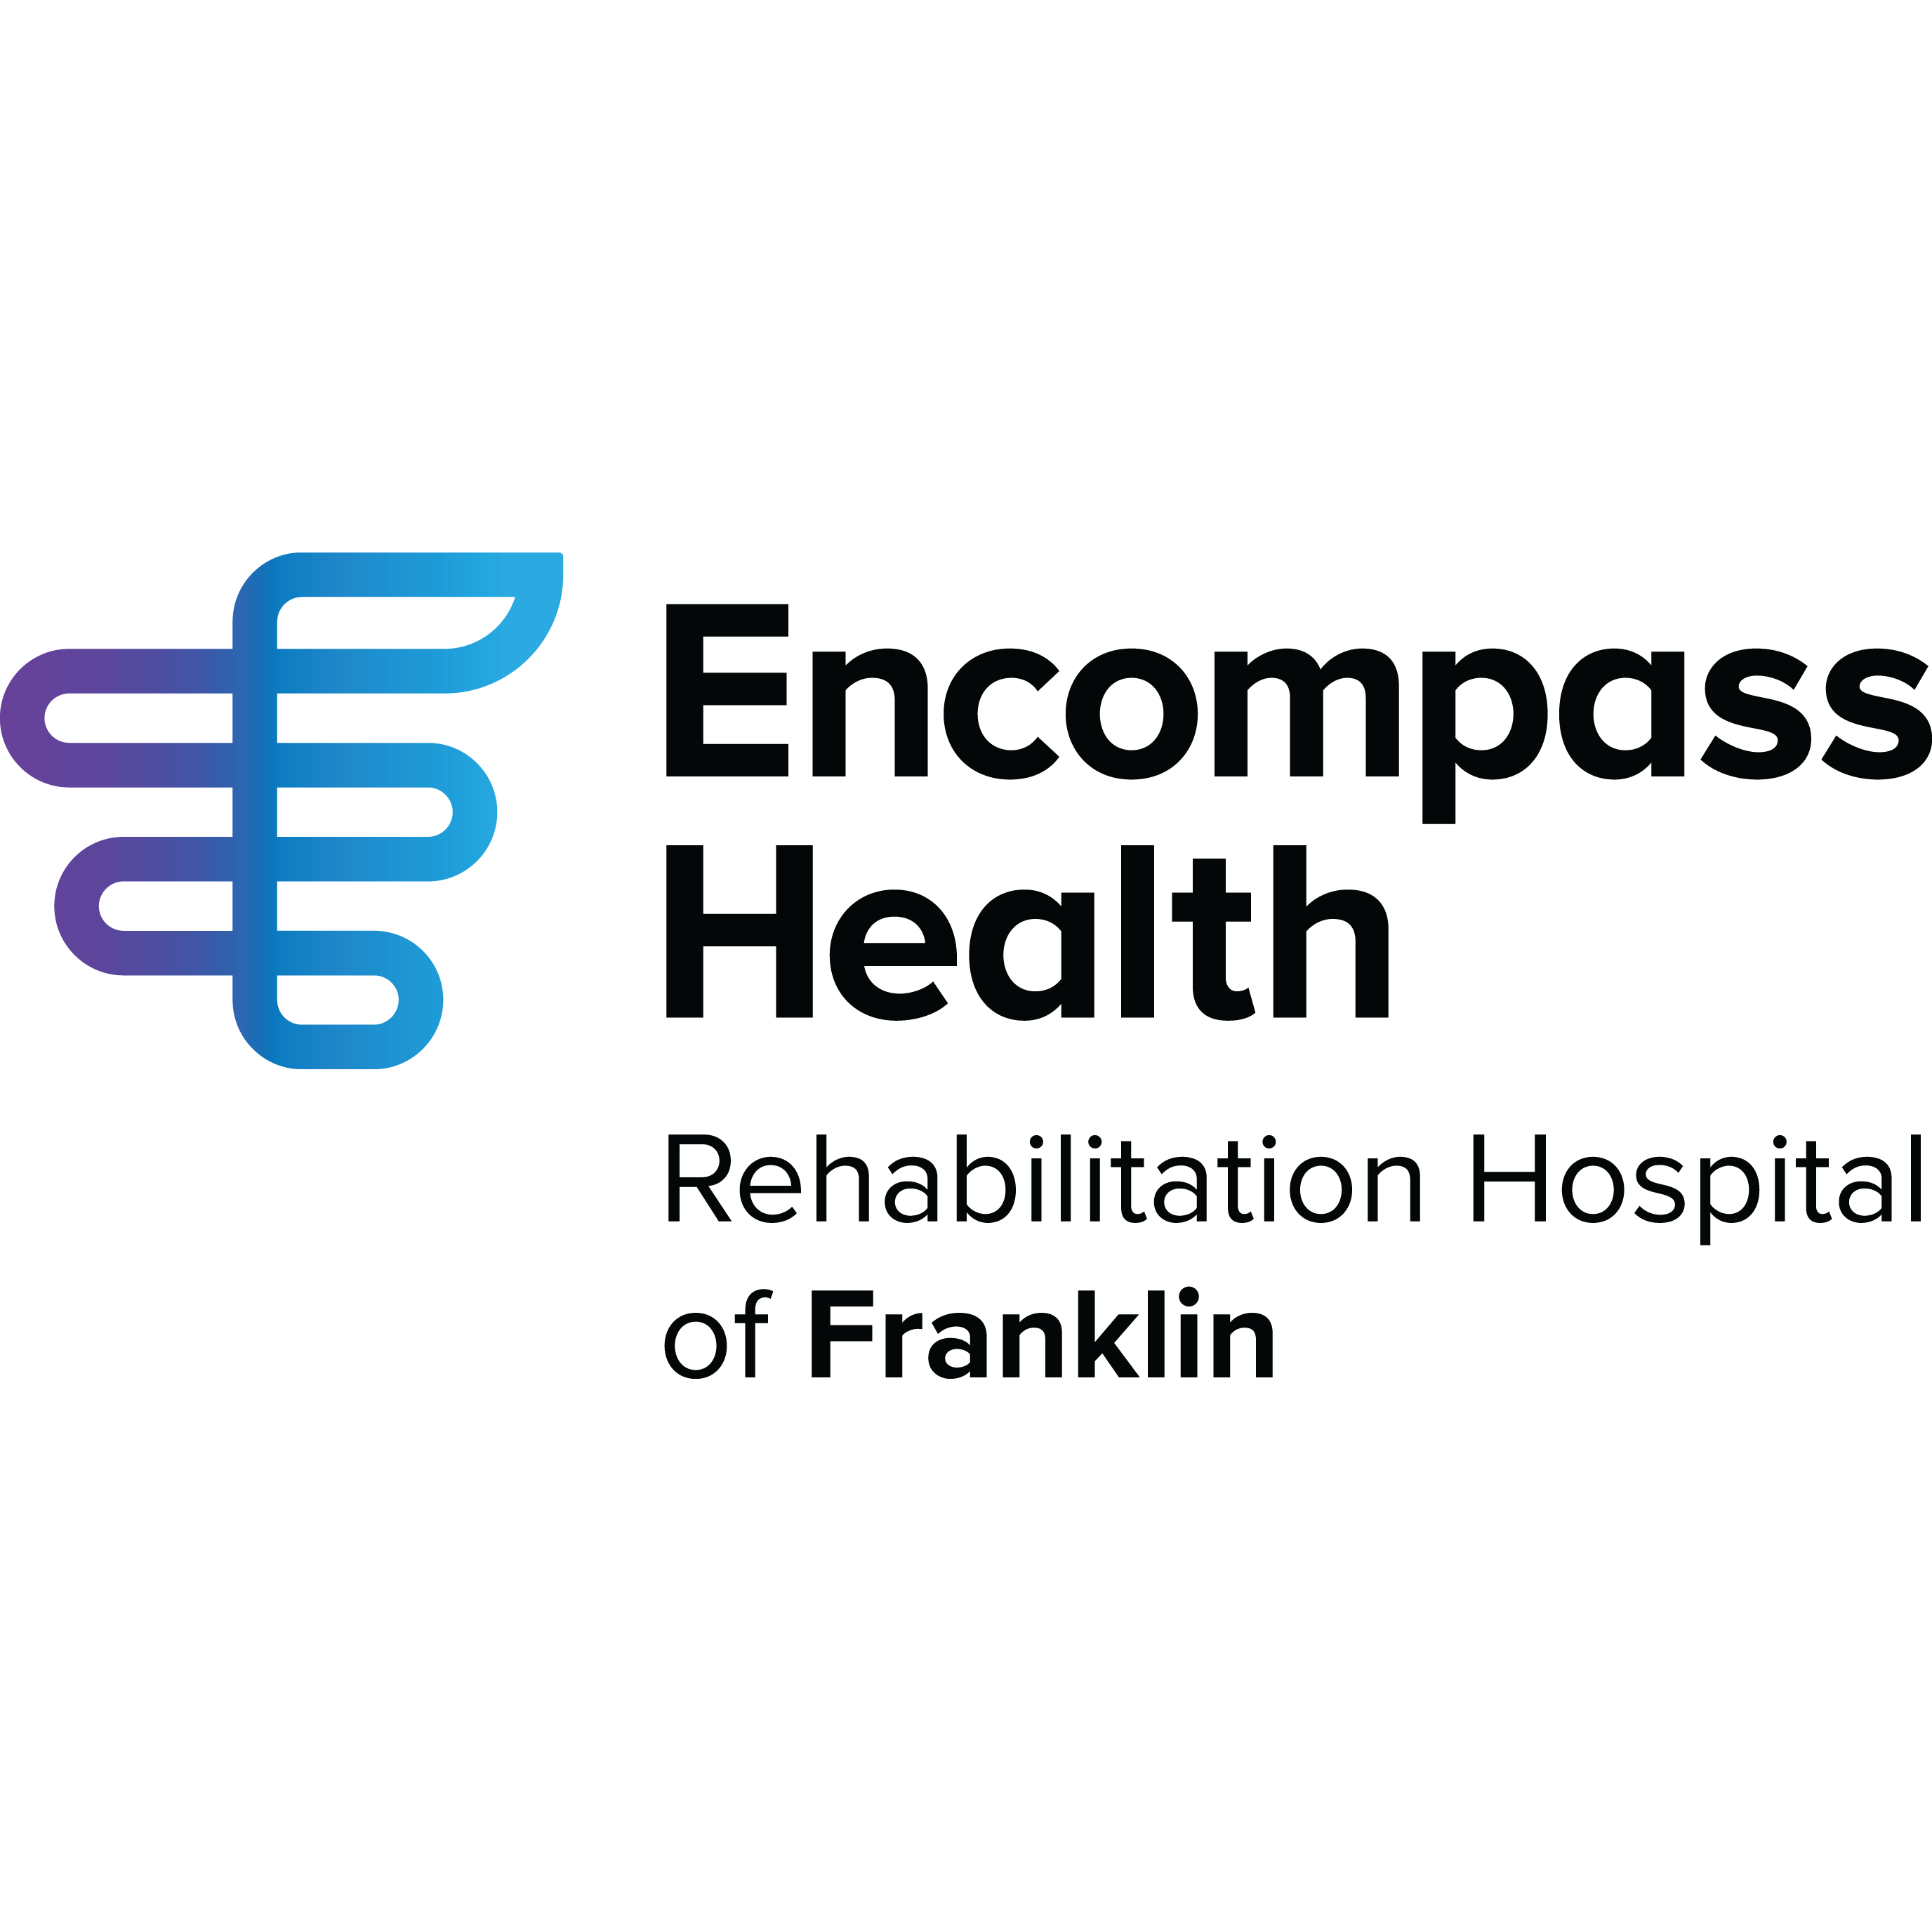 Encompass Health Rehabilitation Hospital of Franklin image 1